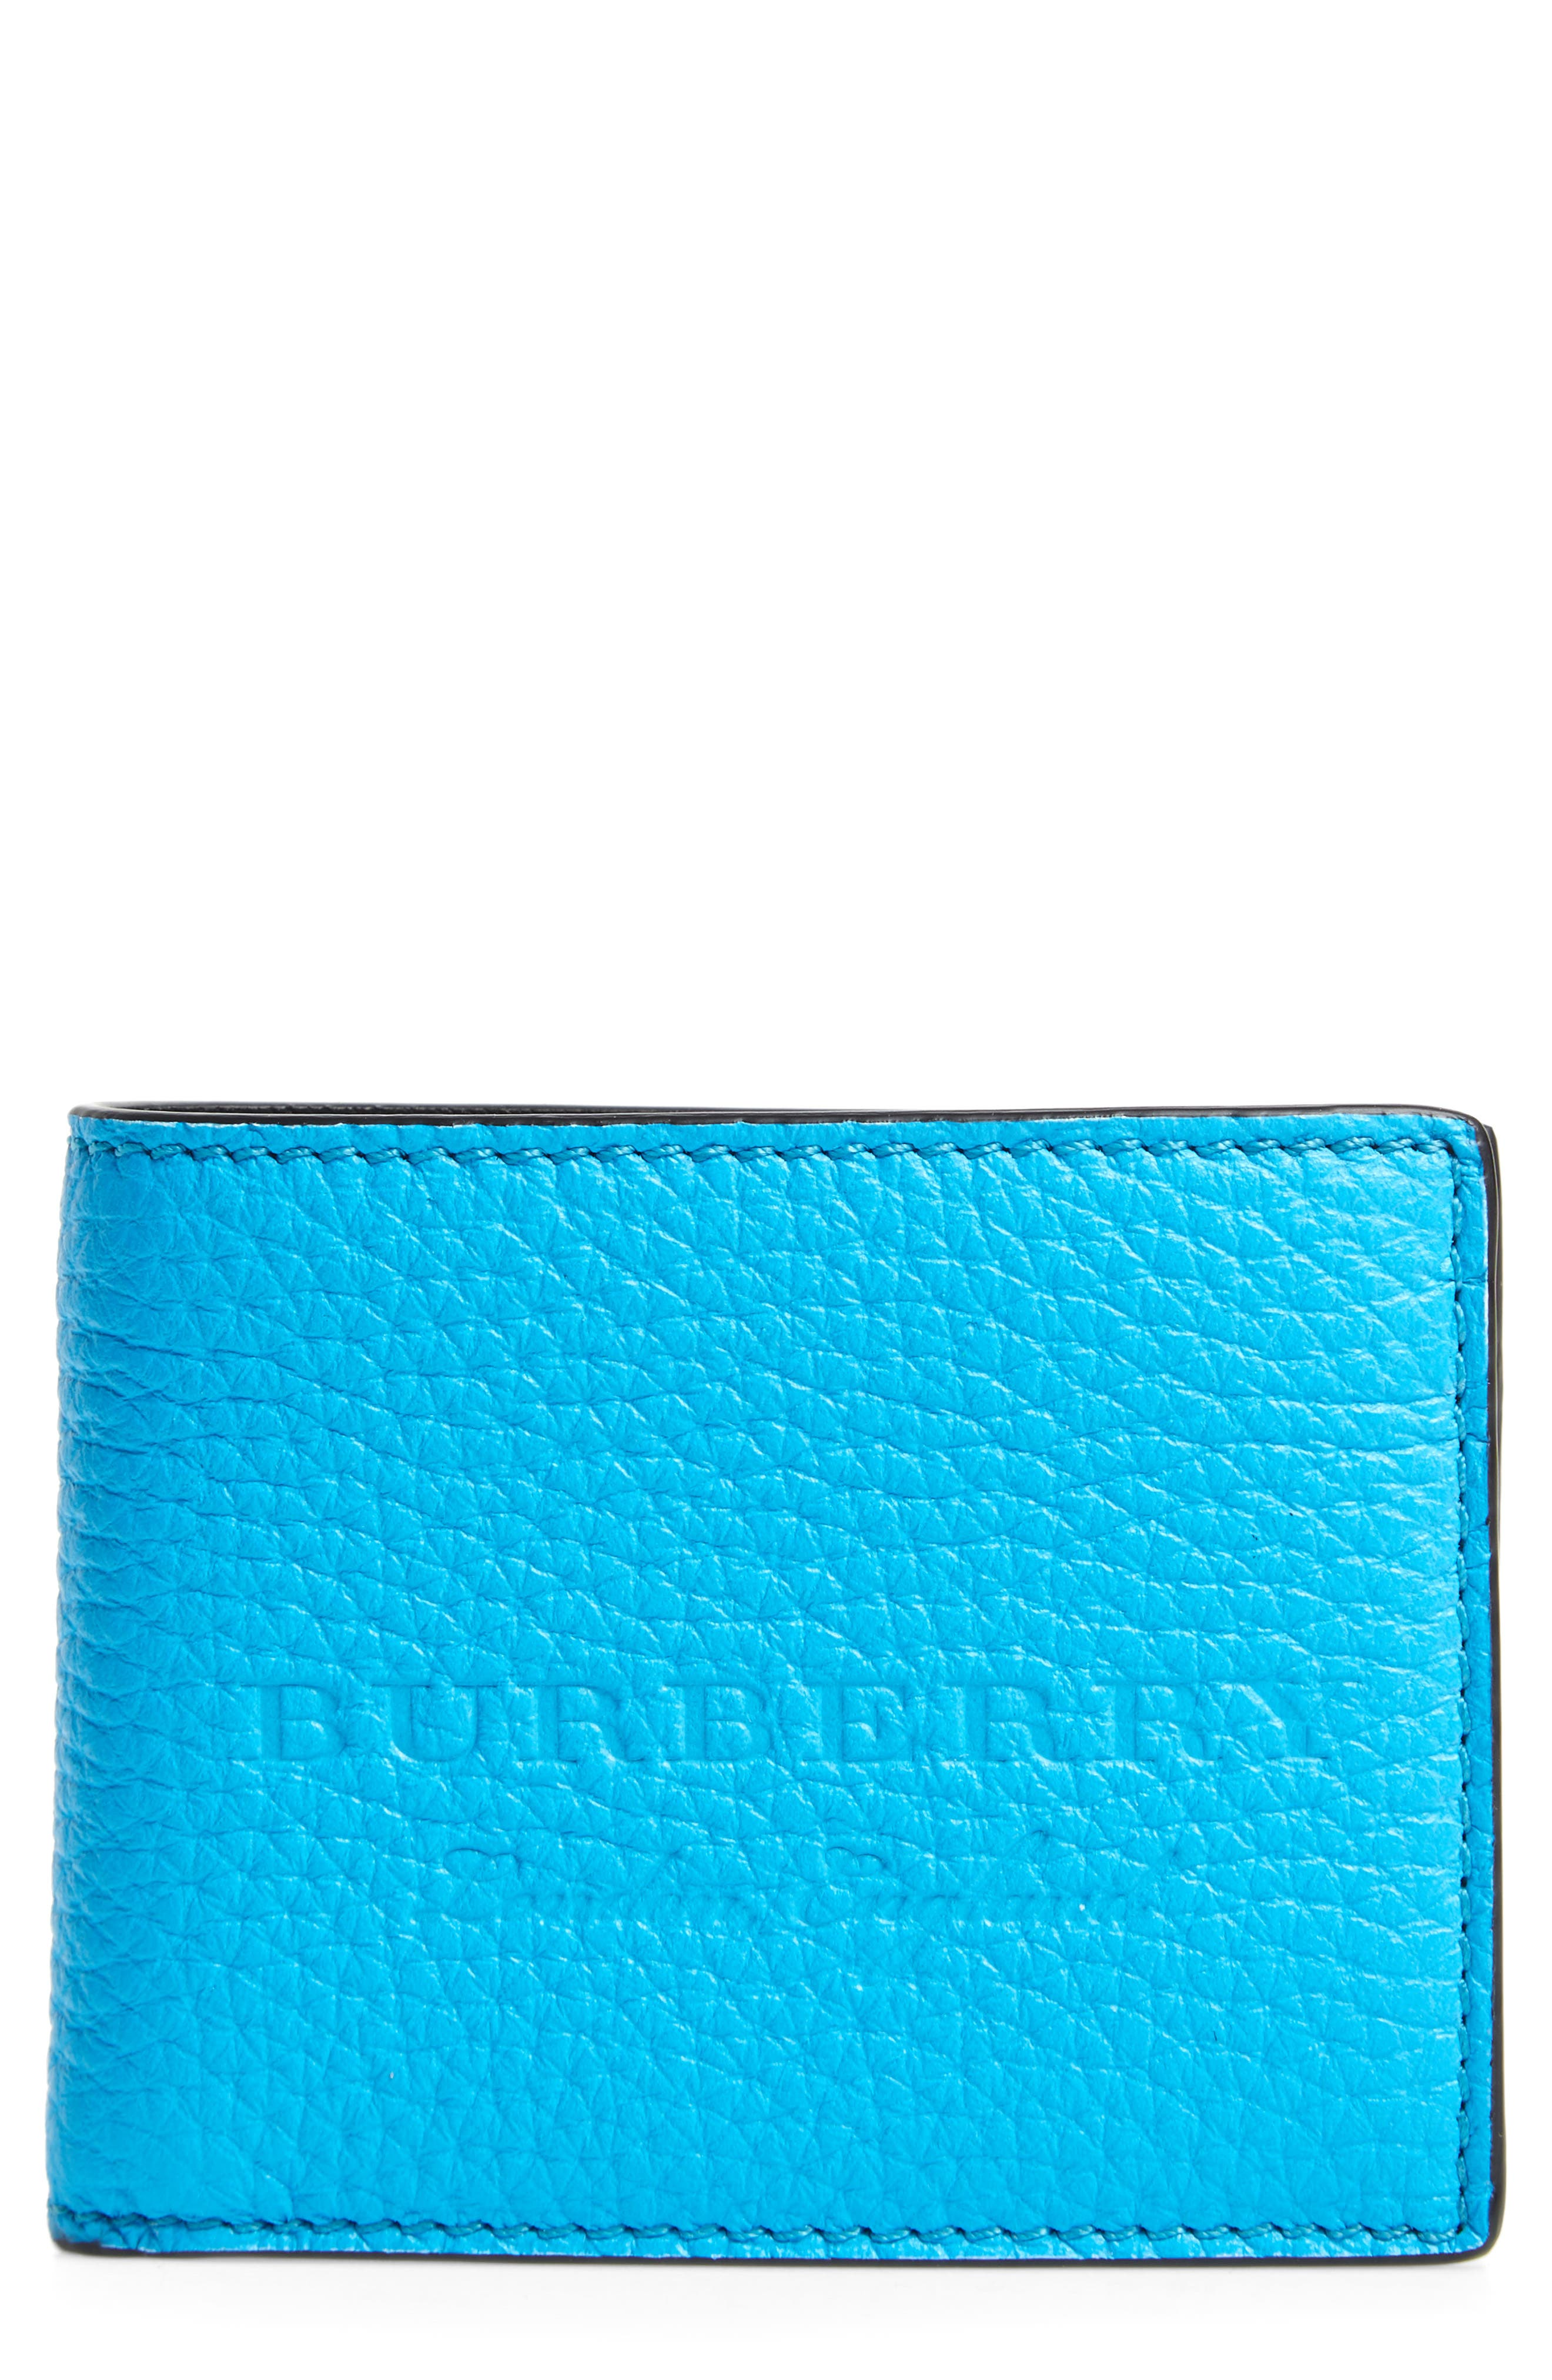 Burberry Leather Bifold Wallet